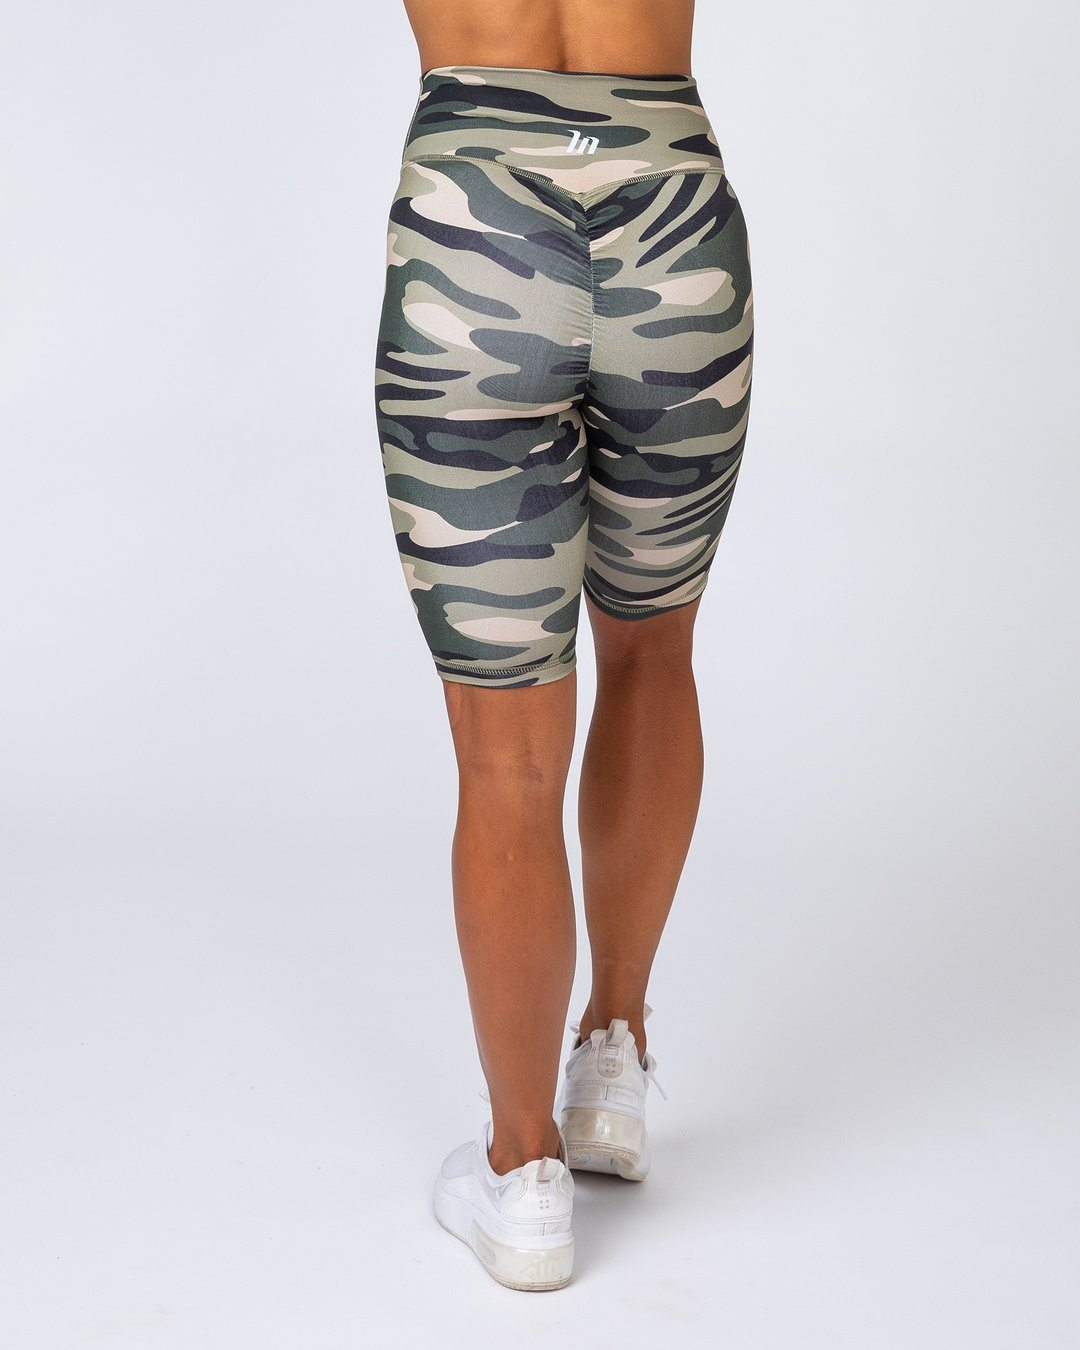 Muscle Nation Referee Length High Waist Scrunch - Green Camo